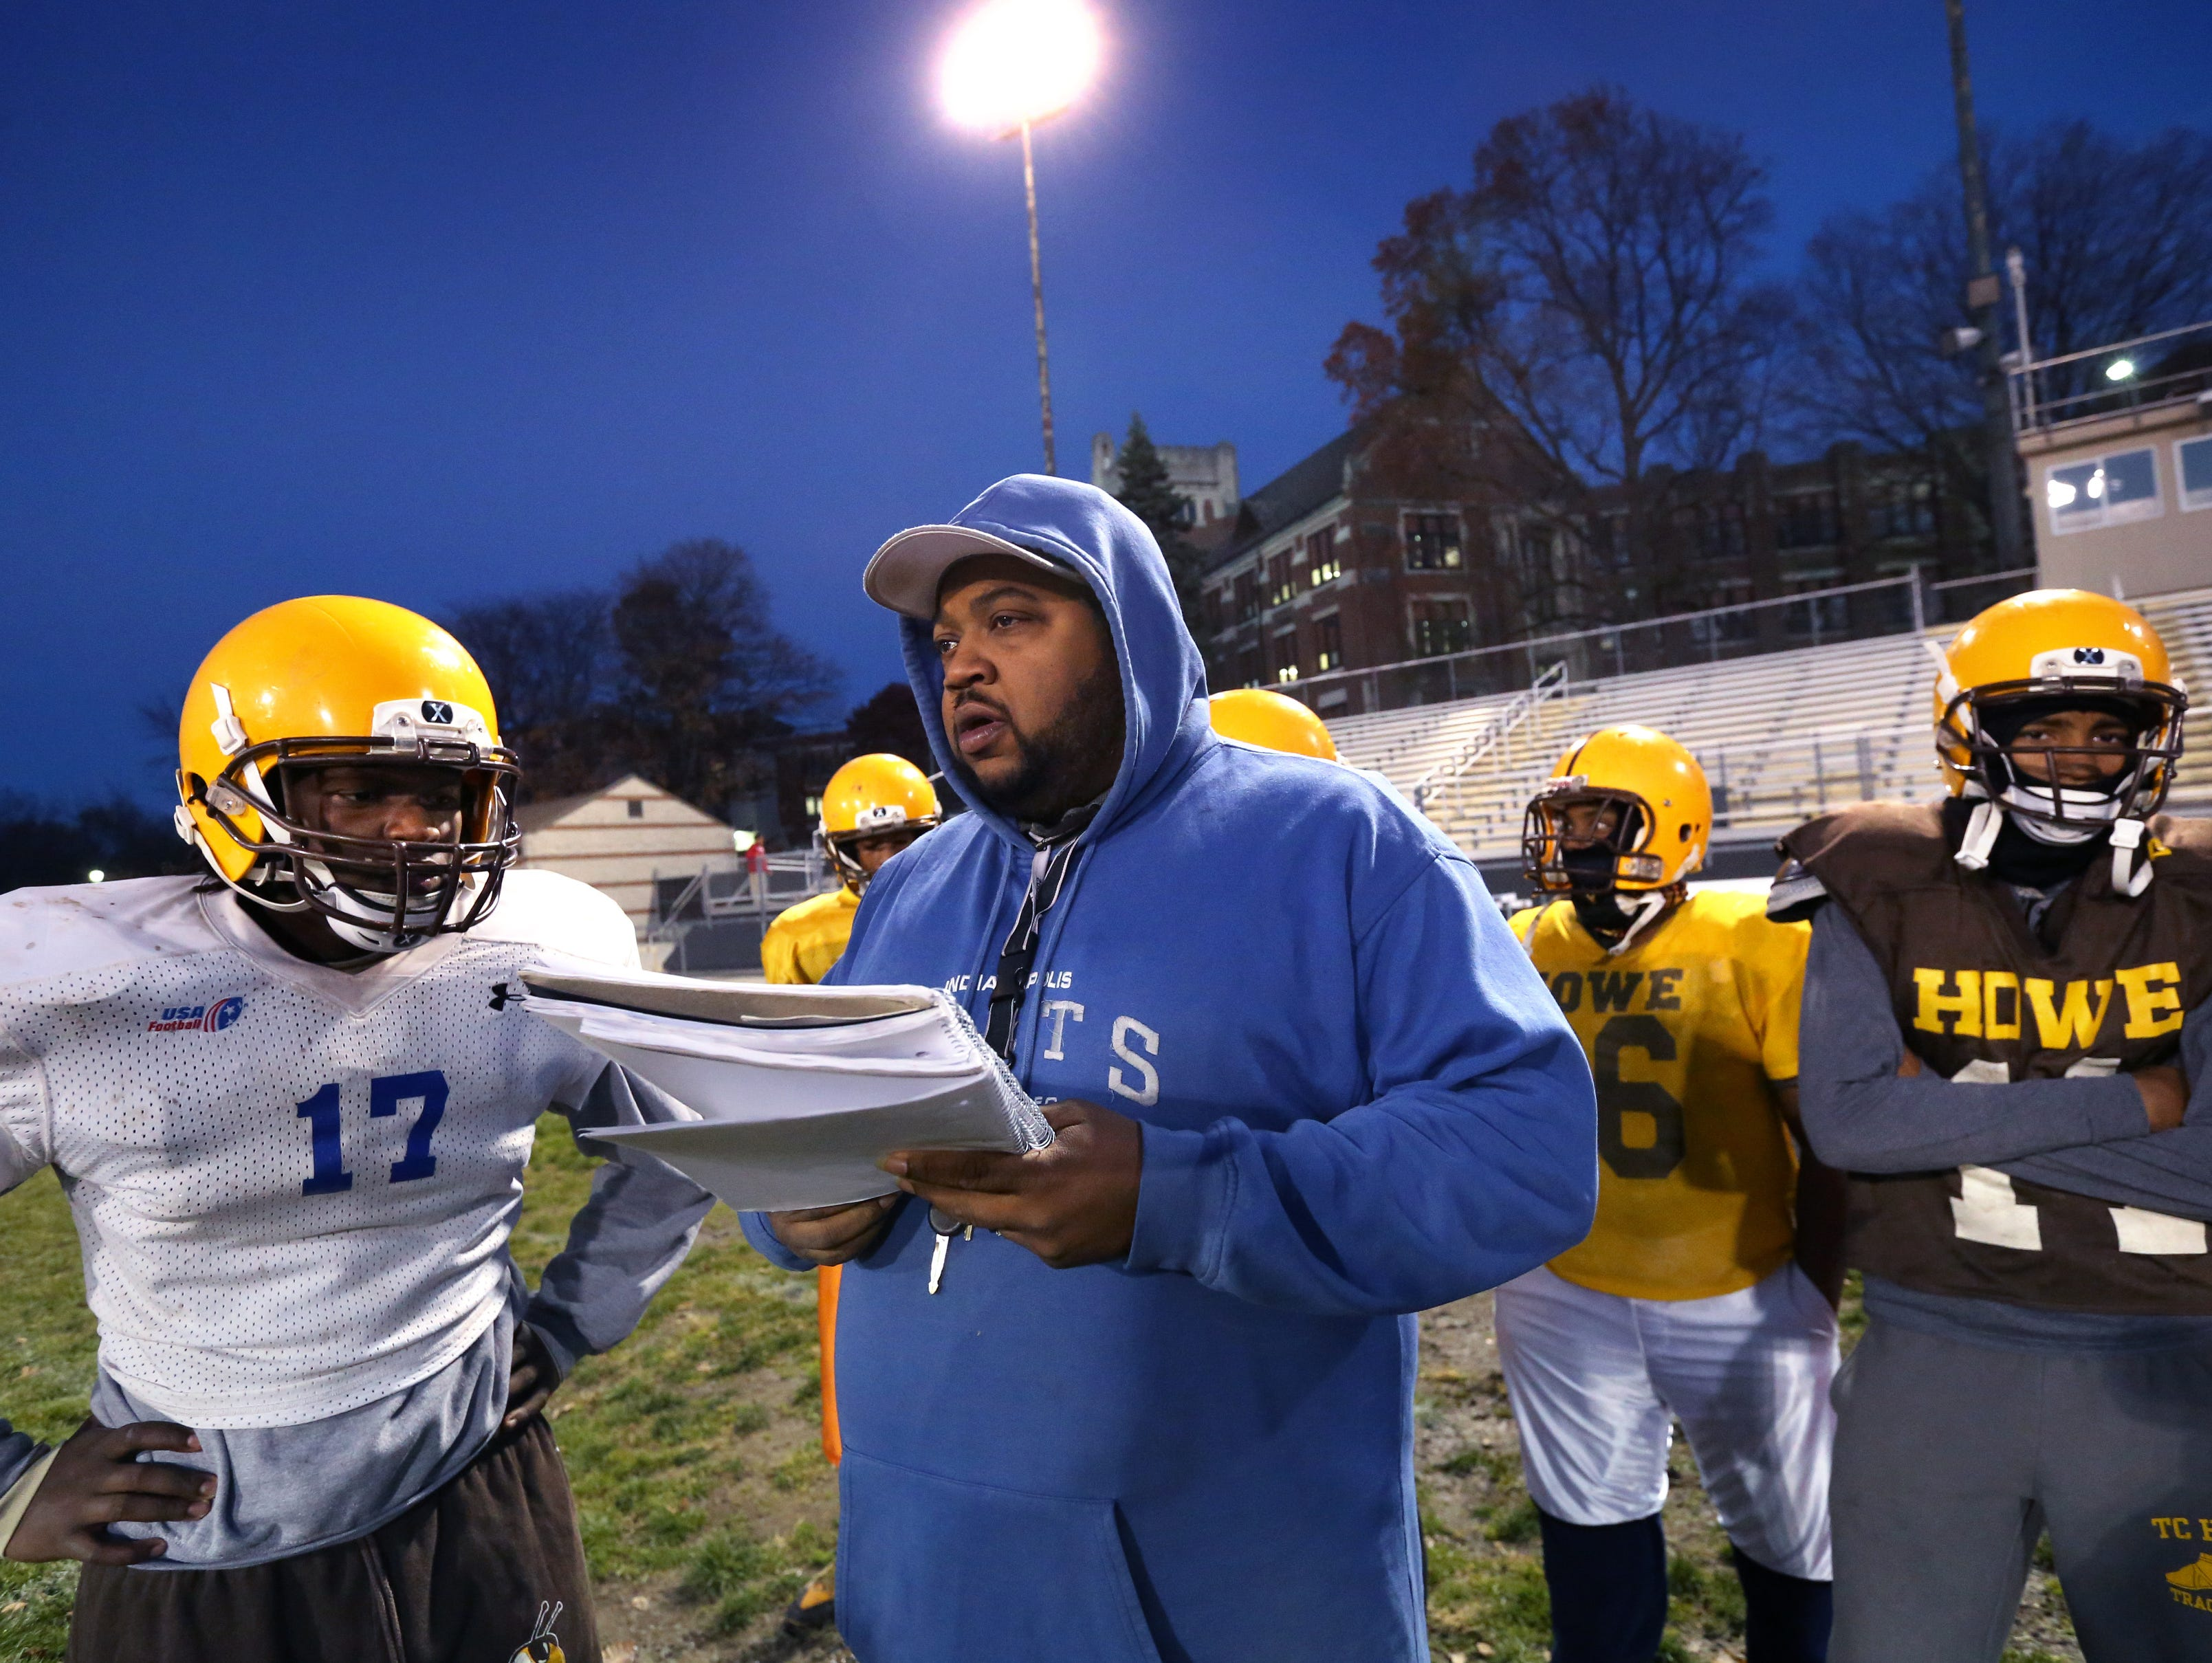 Second-year Howe High School head football coach Craig Chambers outlines a play for senior quarterback Chris Mundy, left, during practice at the school at 4900 Julian Ave., Indianapolis, on Wednesday, Nov. 5, 2014.Second-year Howe High School head football coach Craig Chambers outlines a play for senior quarterback Chris Mundy, left, during practice at the school at 4900 Julian Ave., Indianapolis, on Wednesday, Nov. 5, 2014. After their 20-13 win over the South Decatur Cougars, the Hornets advance to their first sectional championship football game in school history.